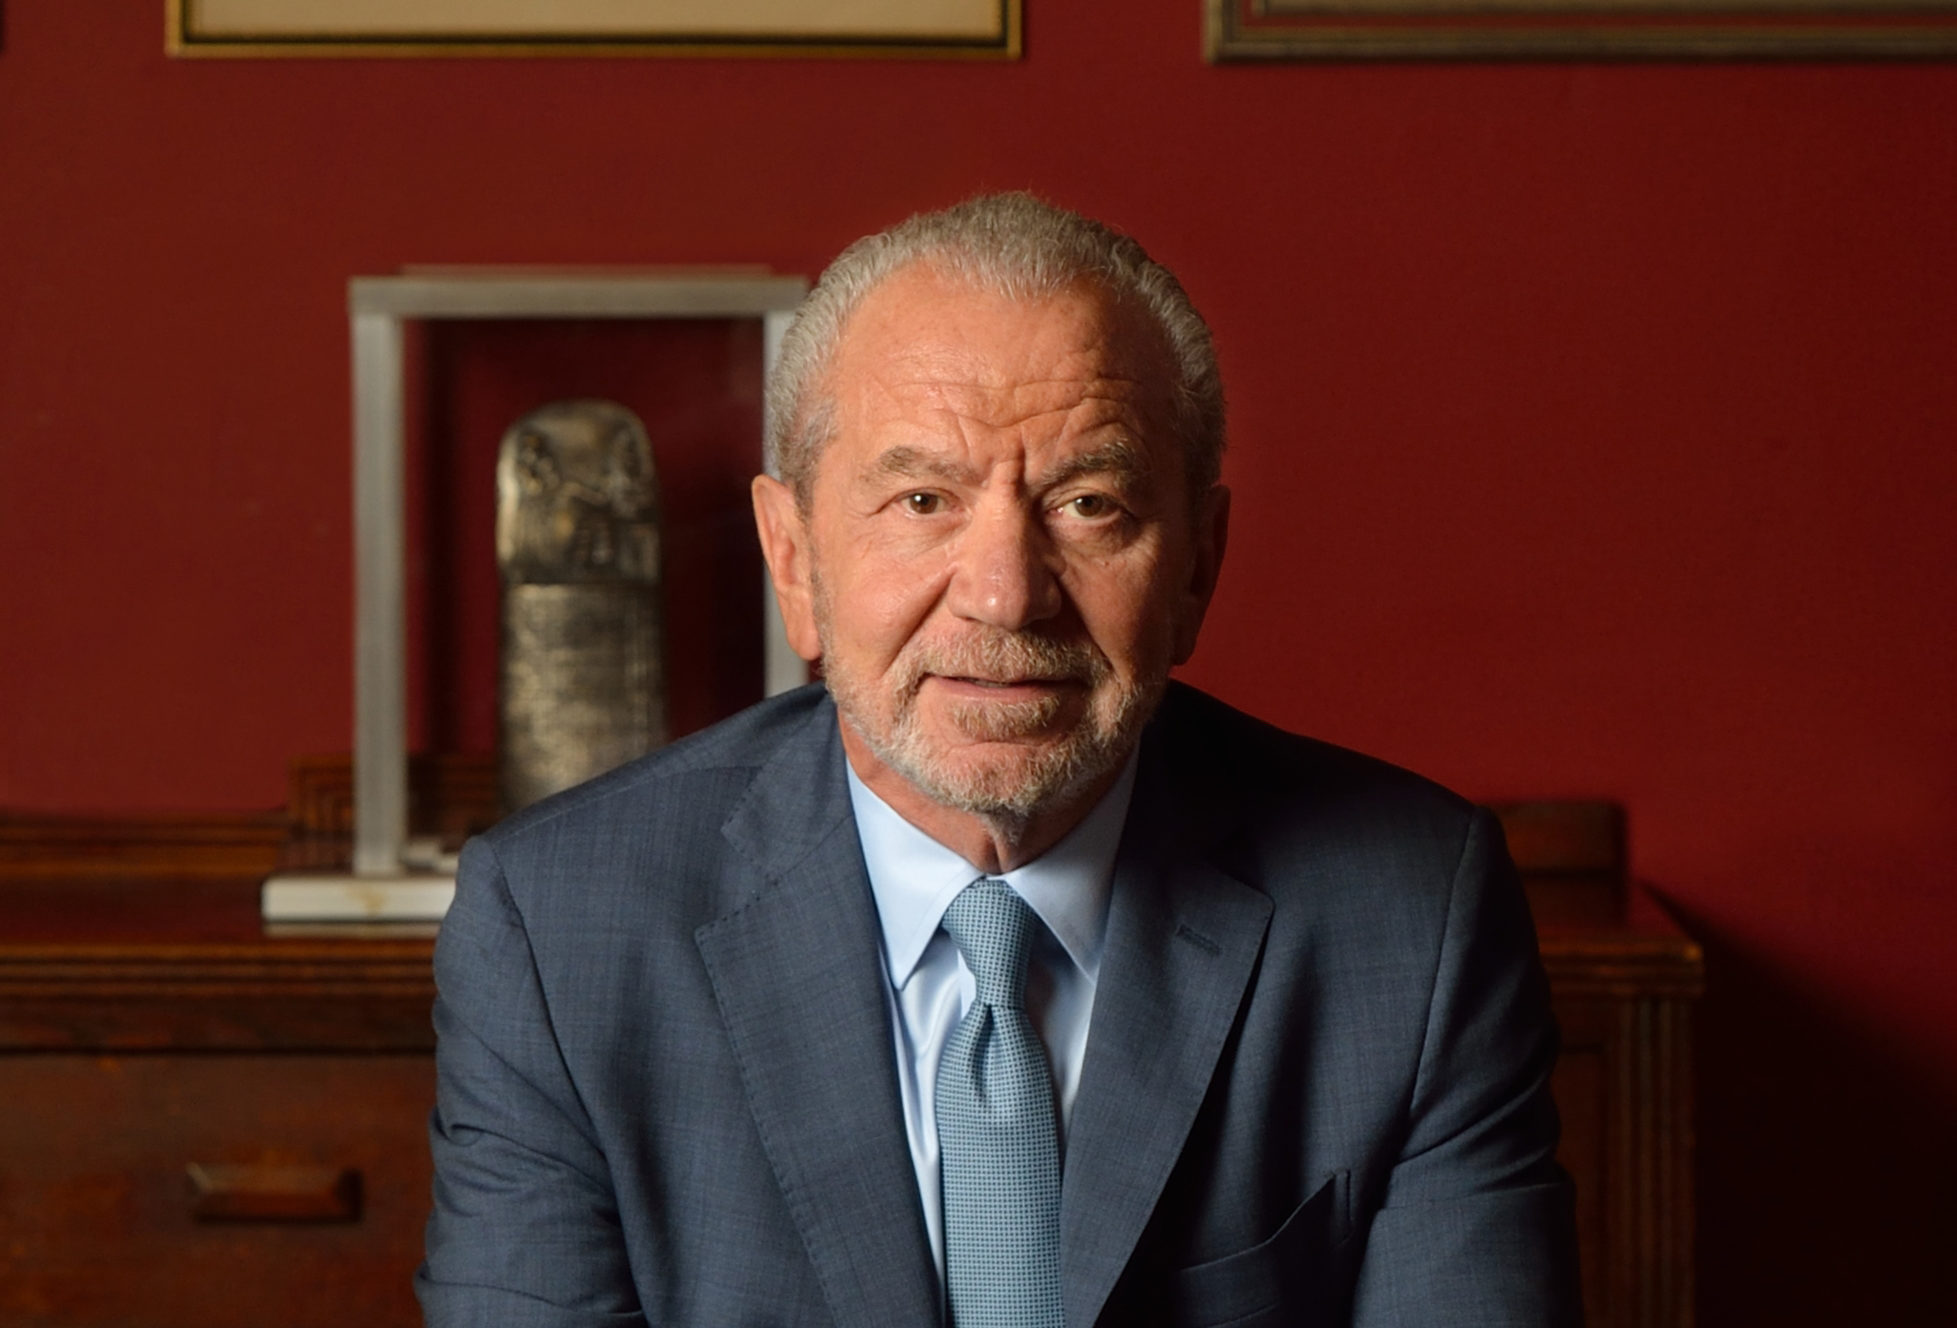 Lord Alan Sugar. (Chris Williamson/Getty Images)